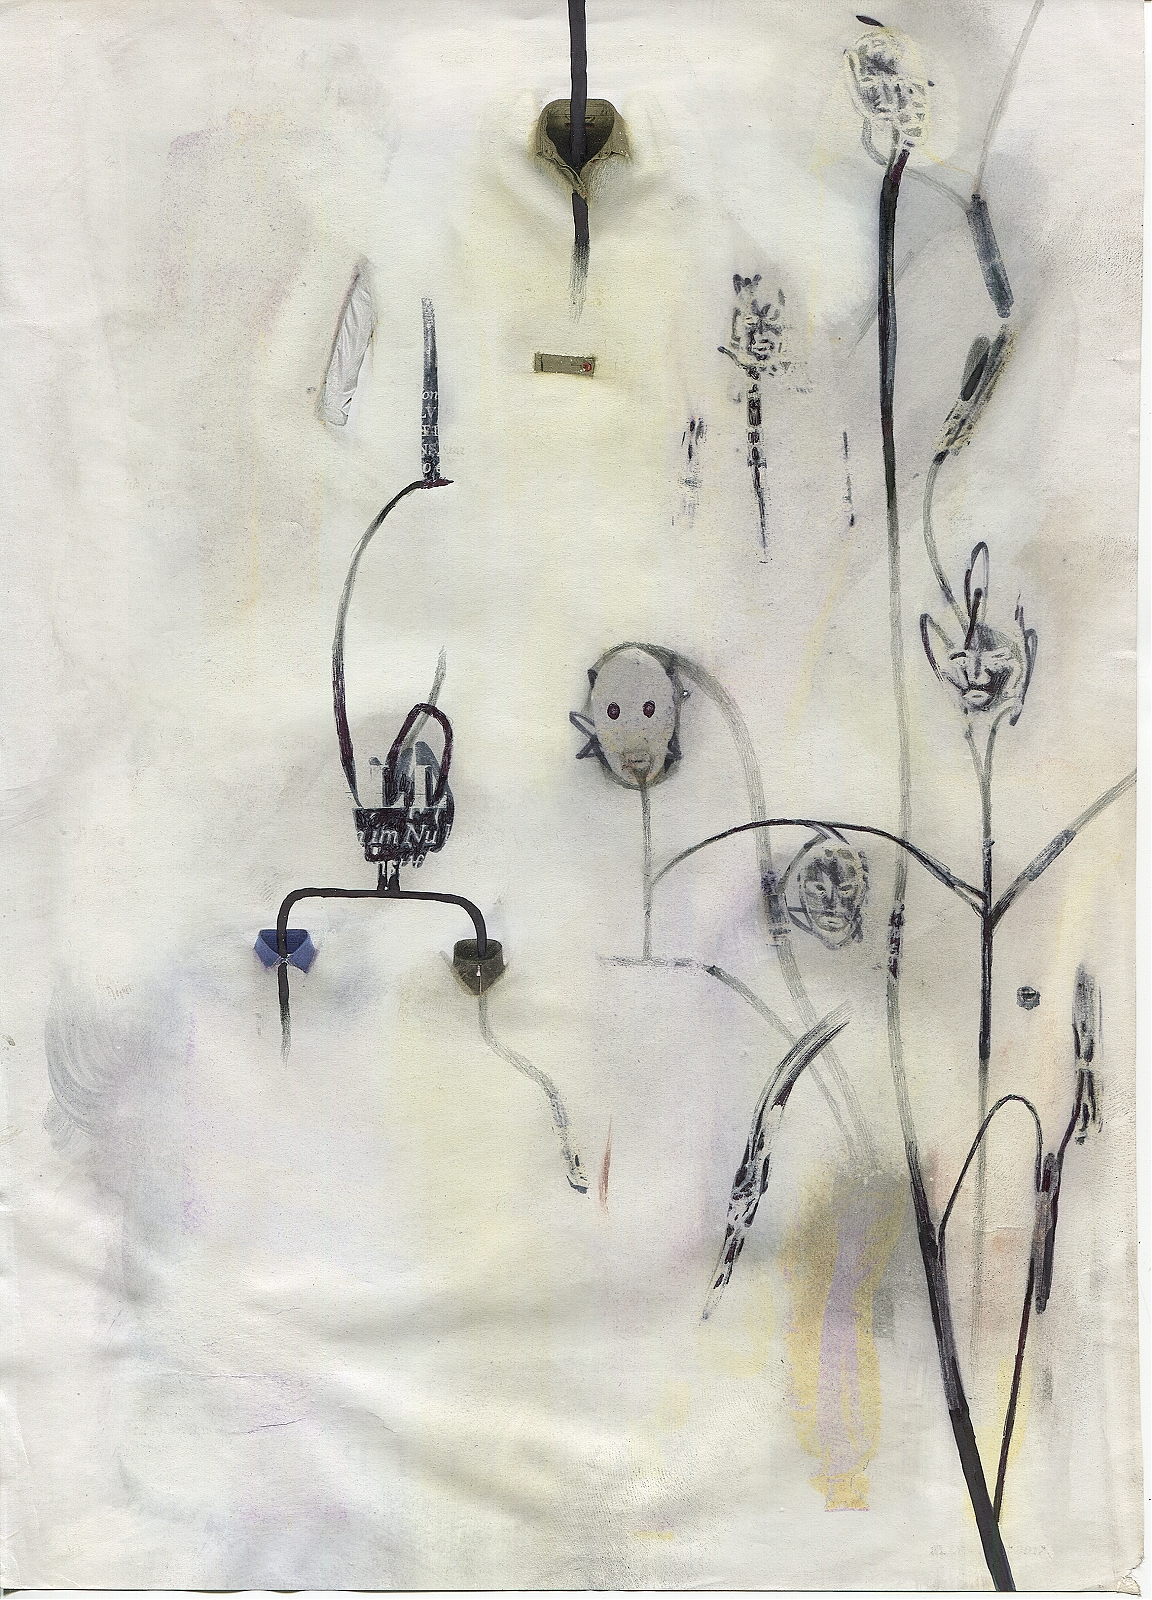 """Lawn of intimations #01"", 2018, lavender oil, pencil, feltpen on magazine page, 19.7 x 27.6 cm"